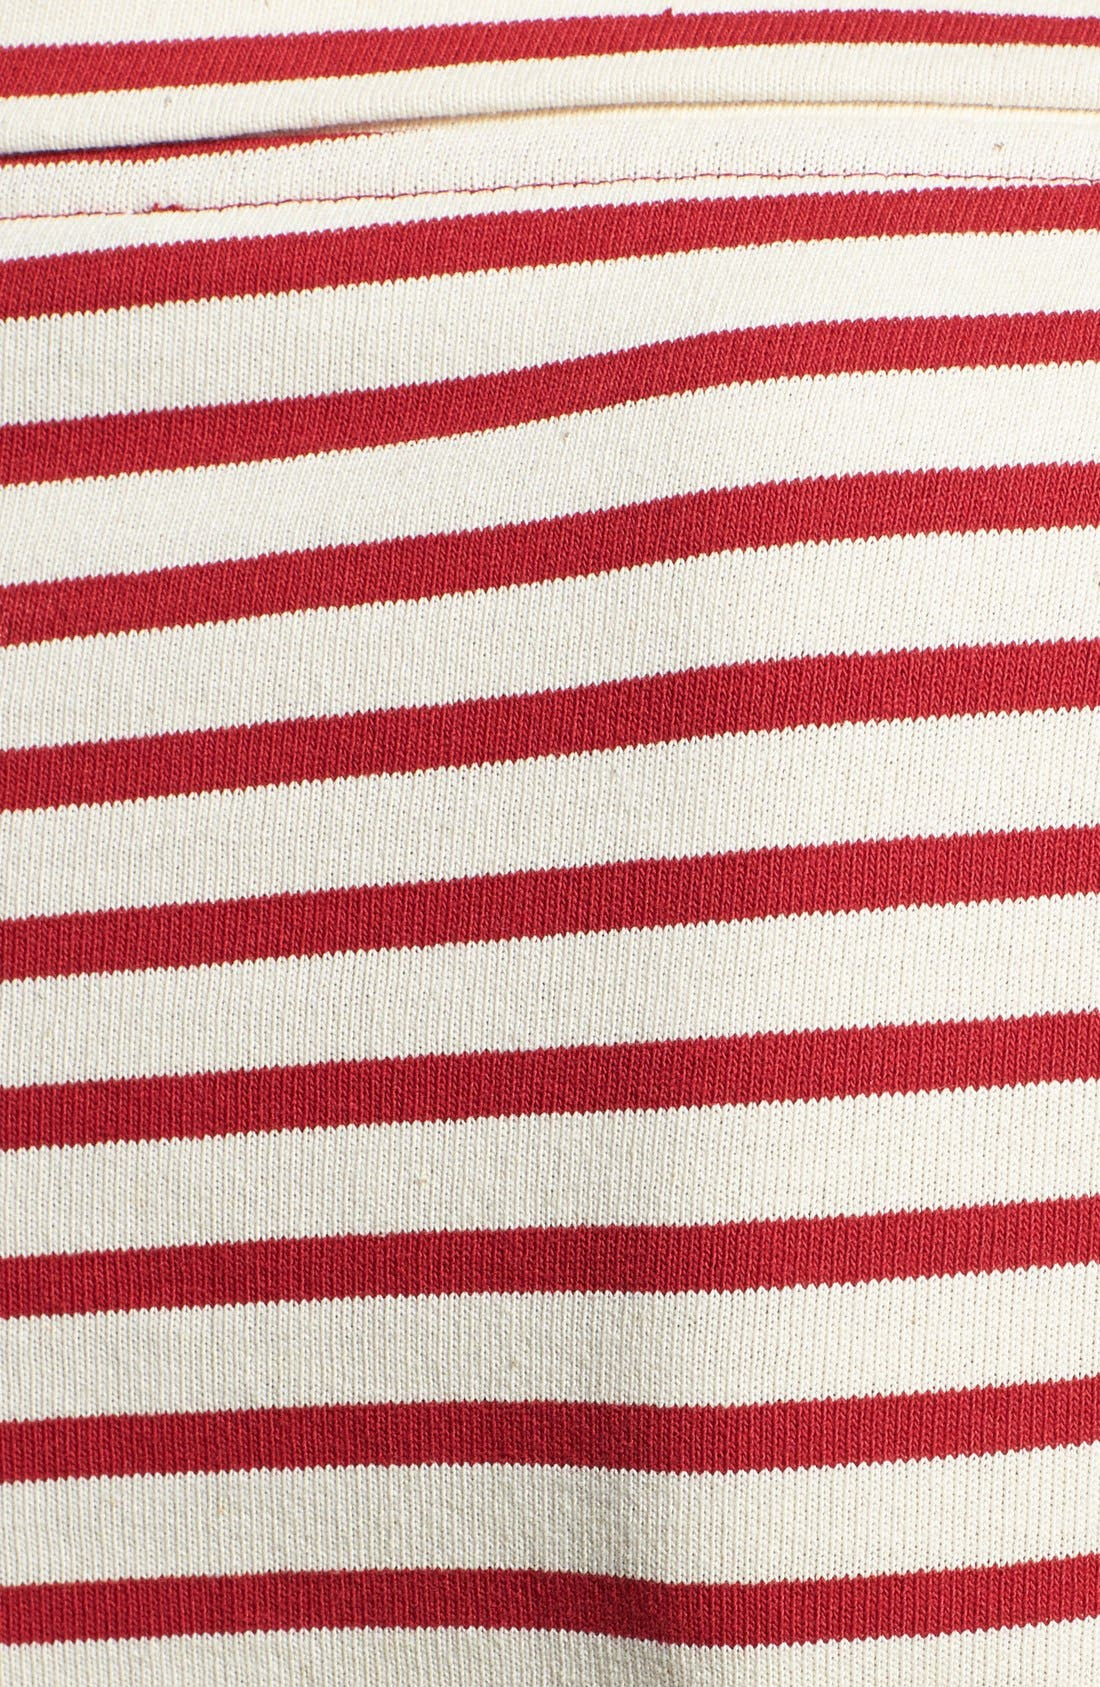 Alternate Image 3  - Burberry Brit Stripe Cotton Boatneck Tee